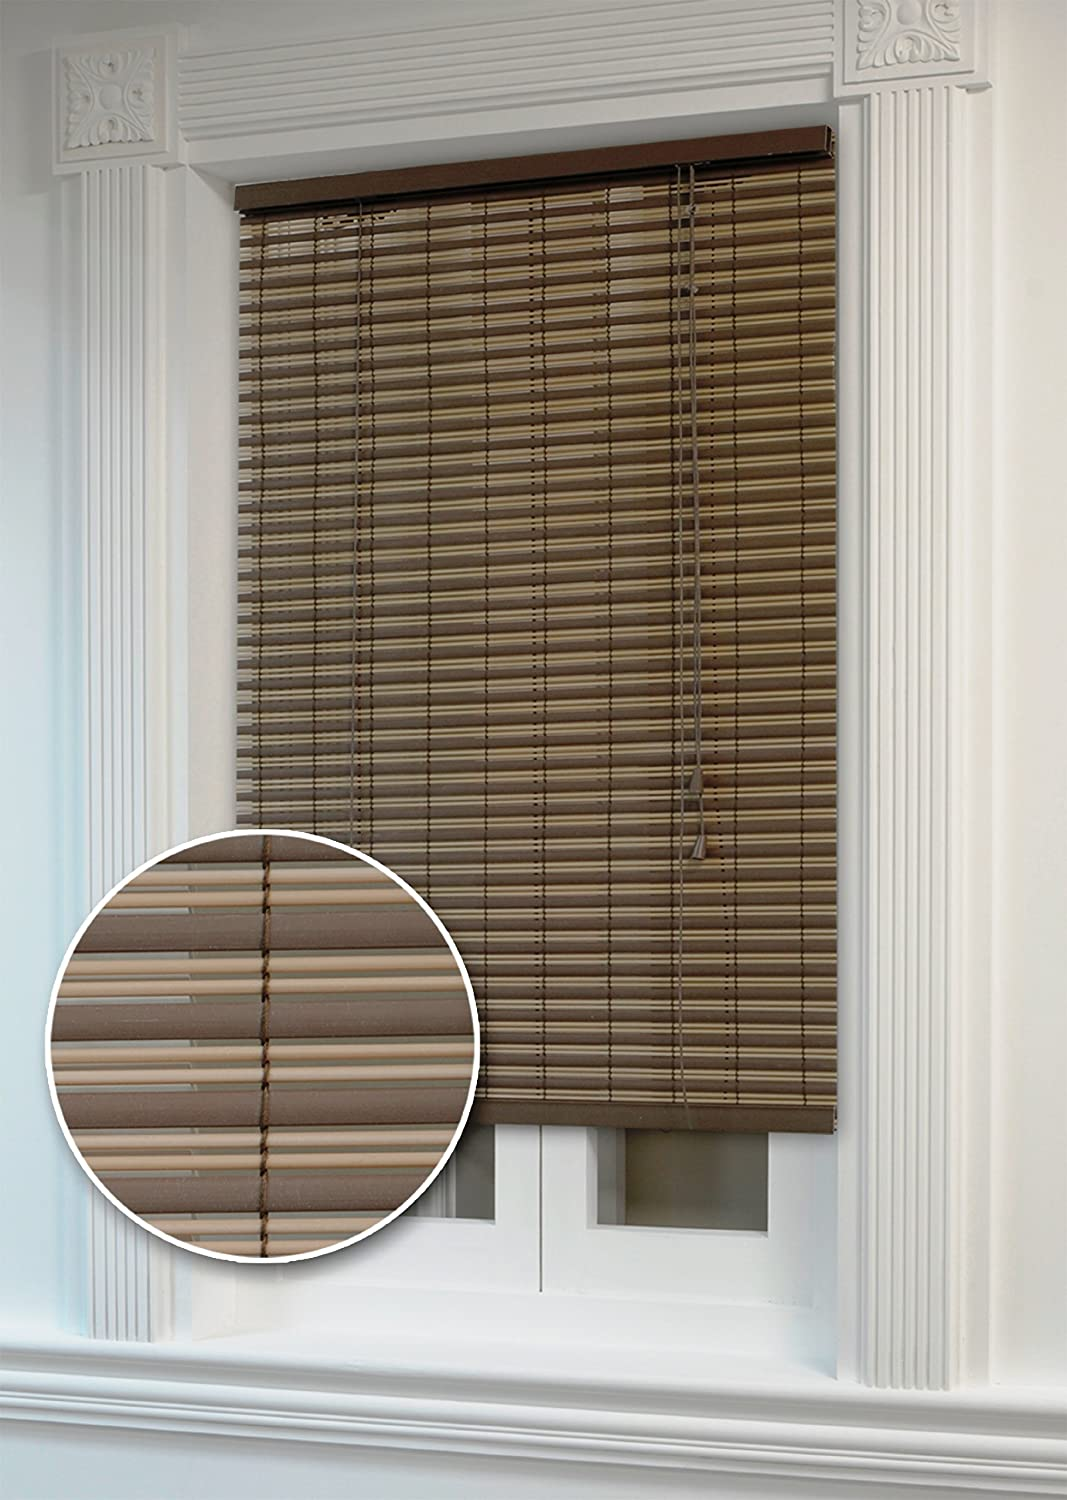 36 inch window blinds - Amazon Com Achim Home Furnishings Ashland Roll Up Shade 30 Inch By 72 Inch Cocoa Almond Home Kitchen